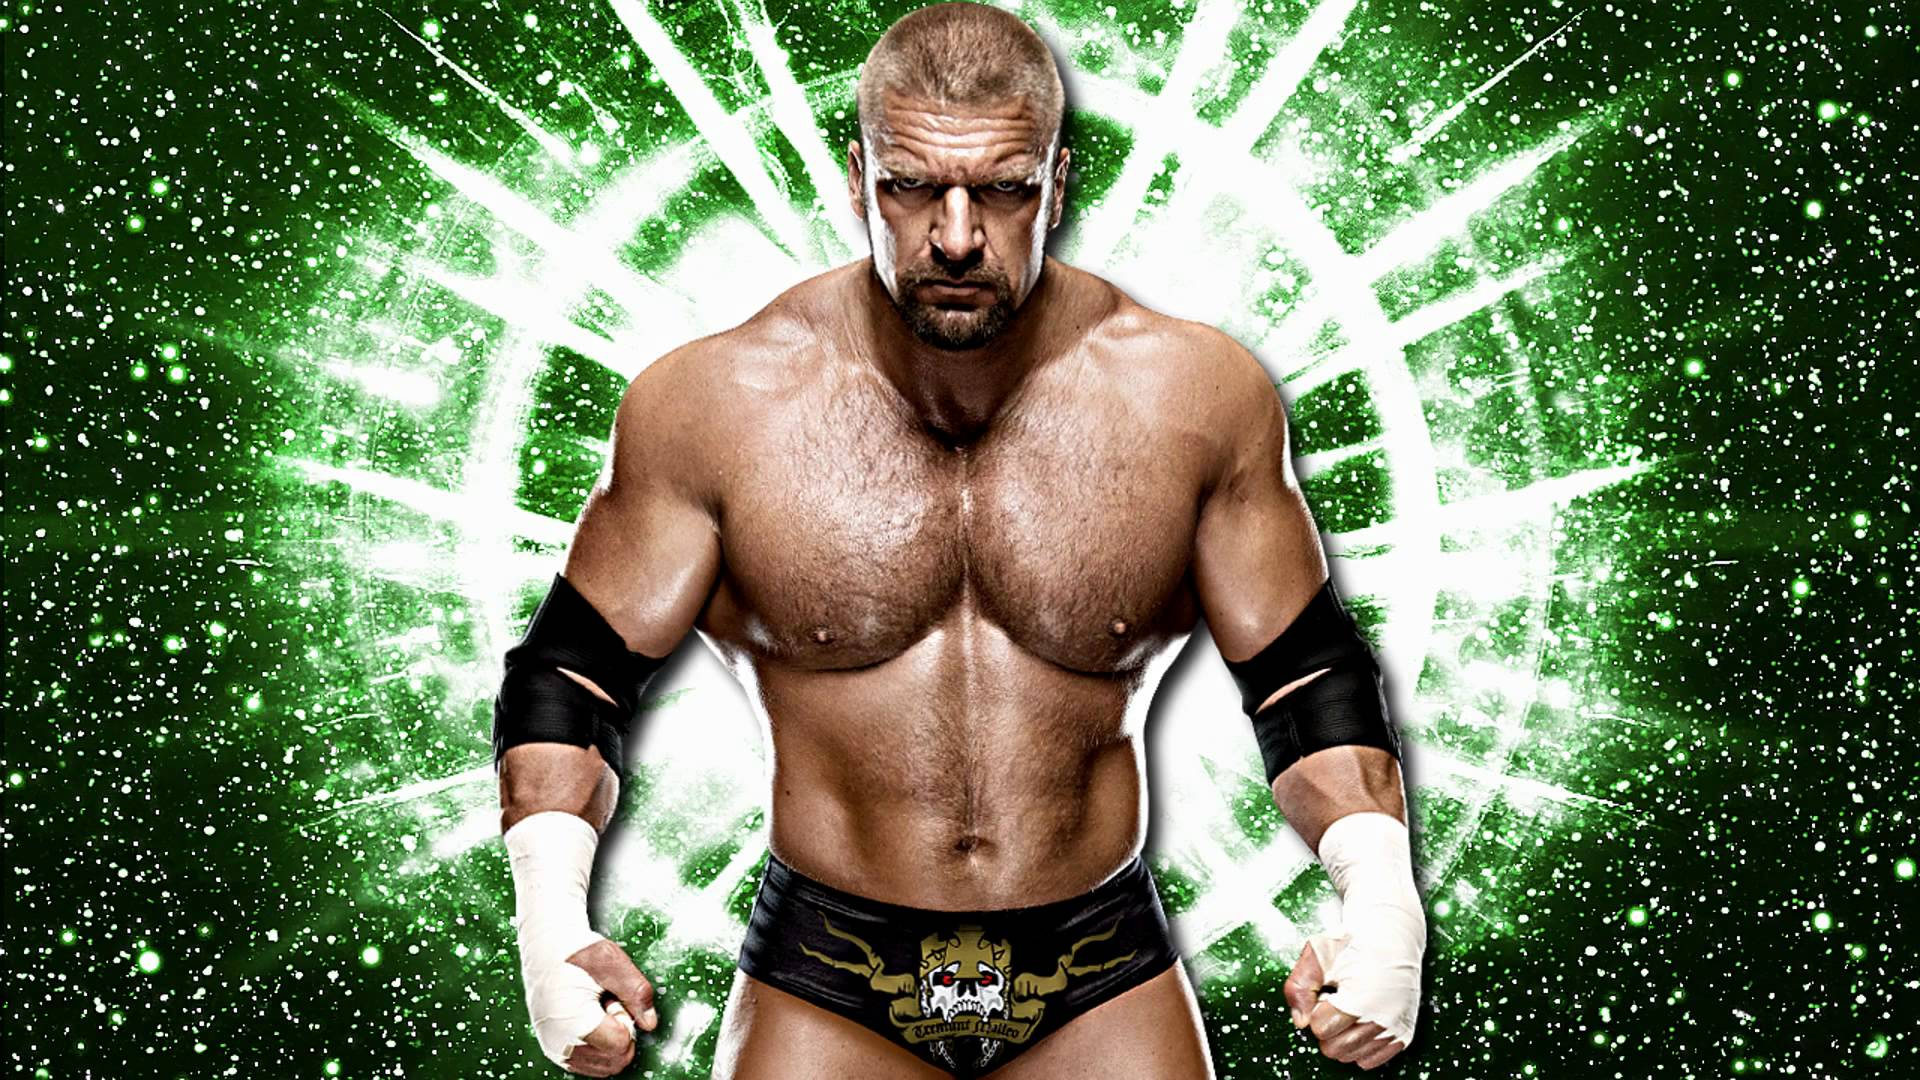 Triple h the game wallpaper on bet tunica gold strike sports betting